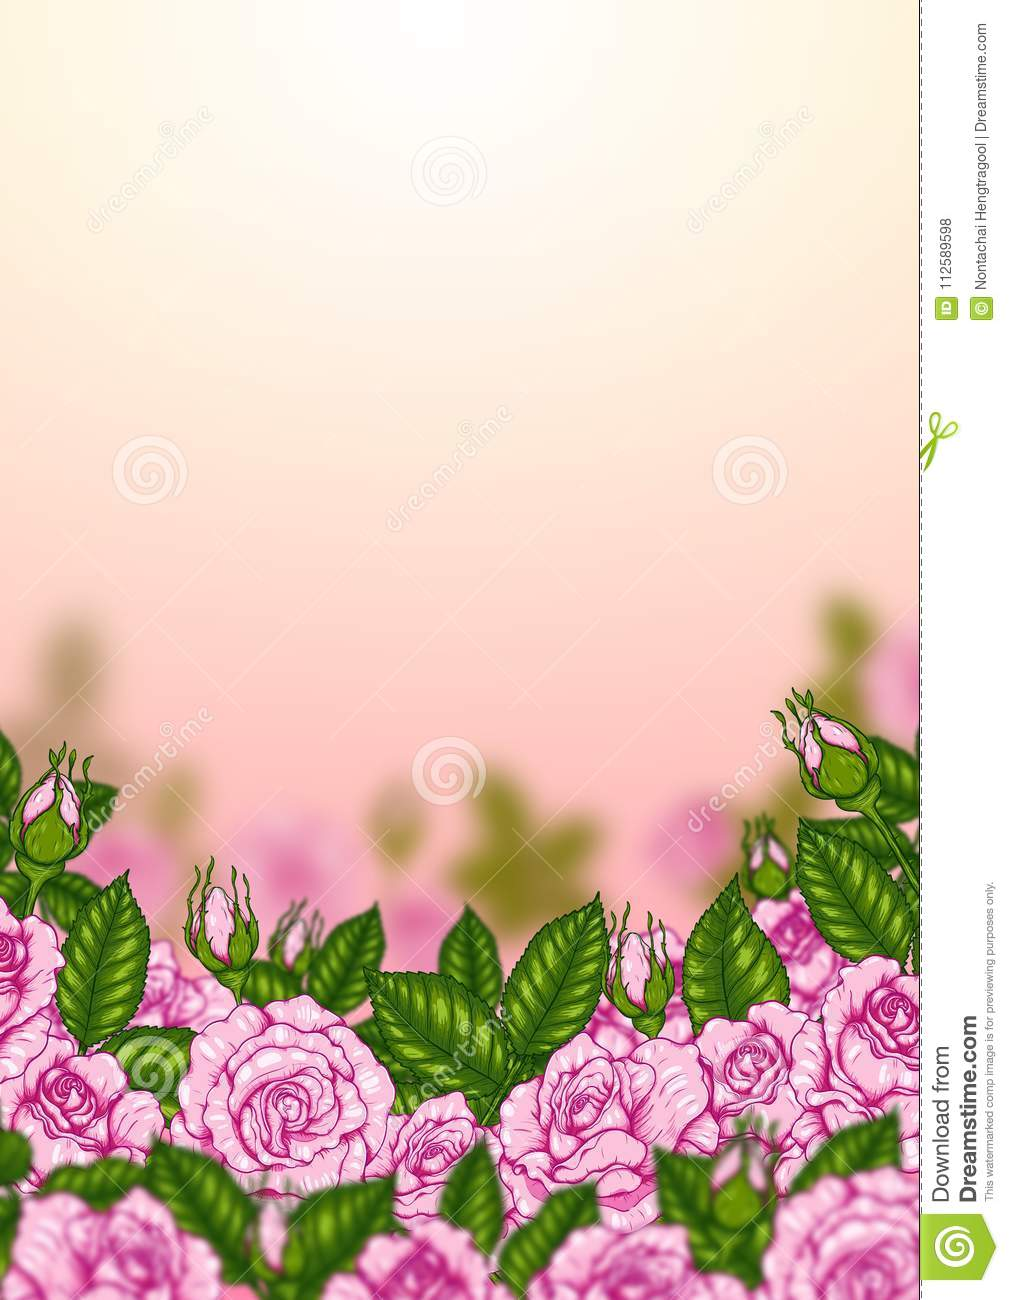 Rose vector by hand drawing.Beautiful flower on white background.Rose art highly detailed in line art style.Rosa queen elizabeth rose for wallpaper